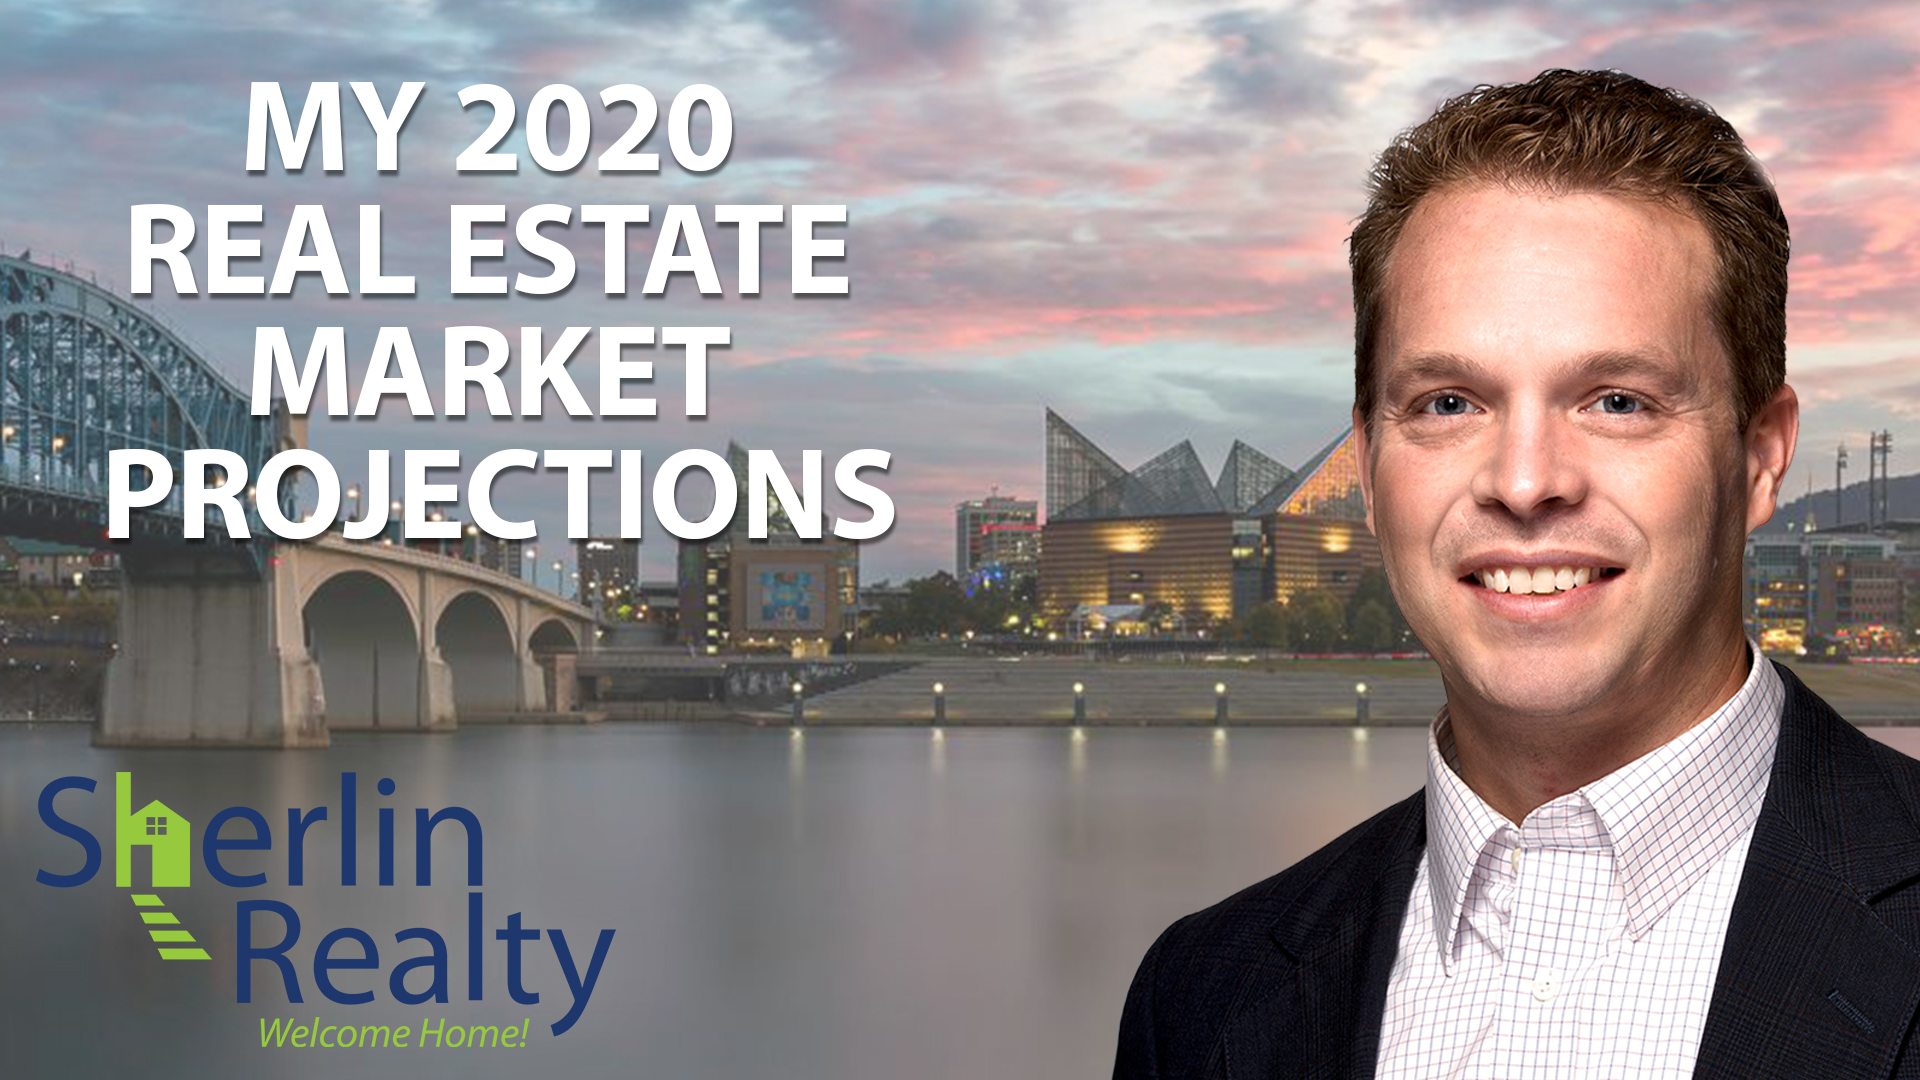 What Can You Expect From Our Market in 2020?